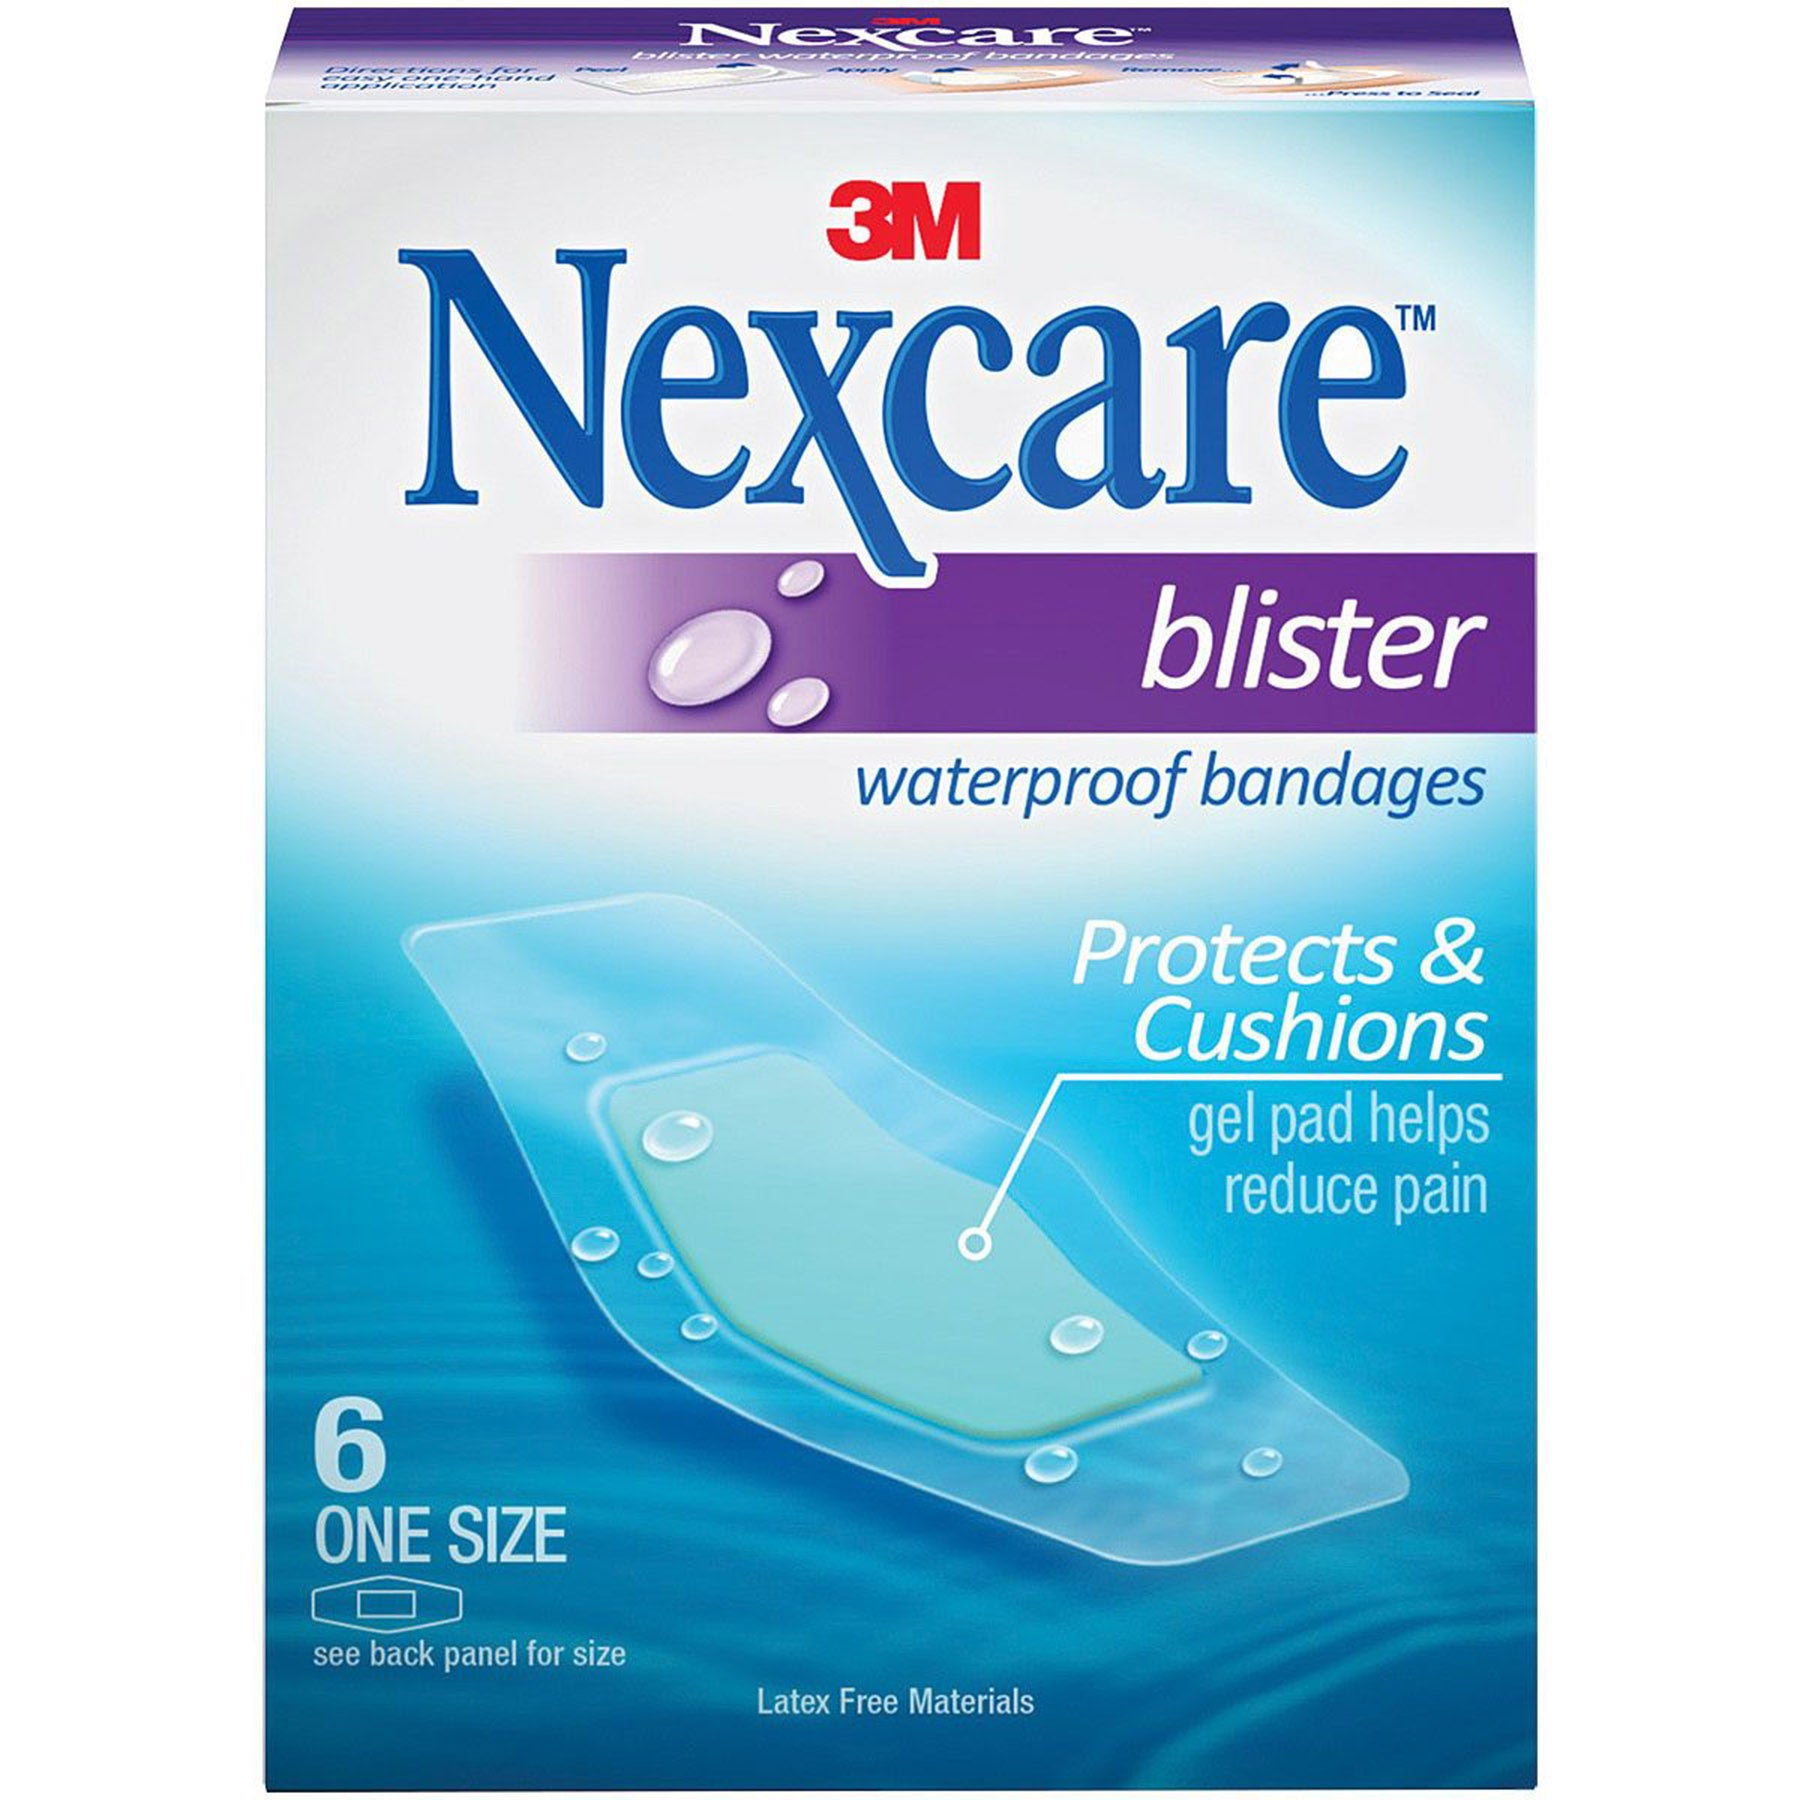 the box that nexcare blister bandages come in, showing a bandage